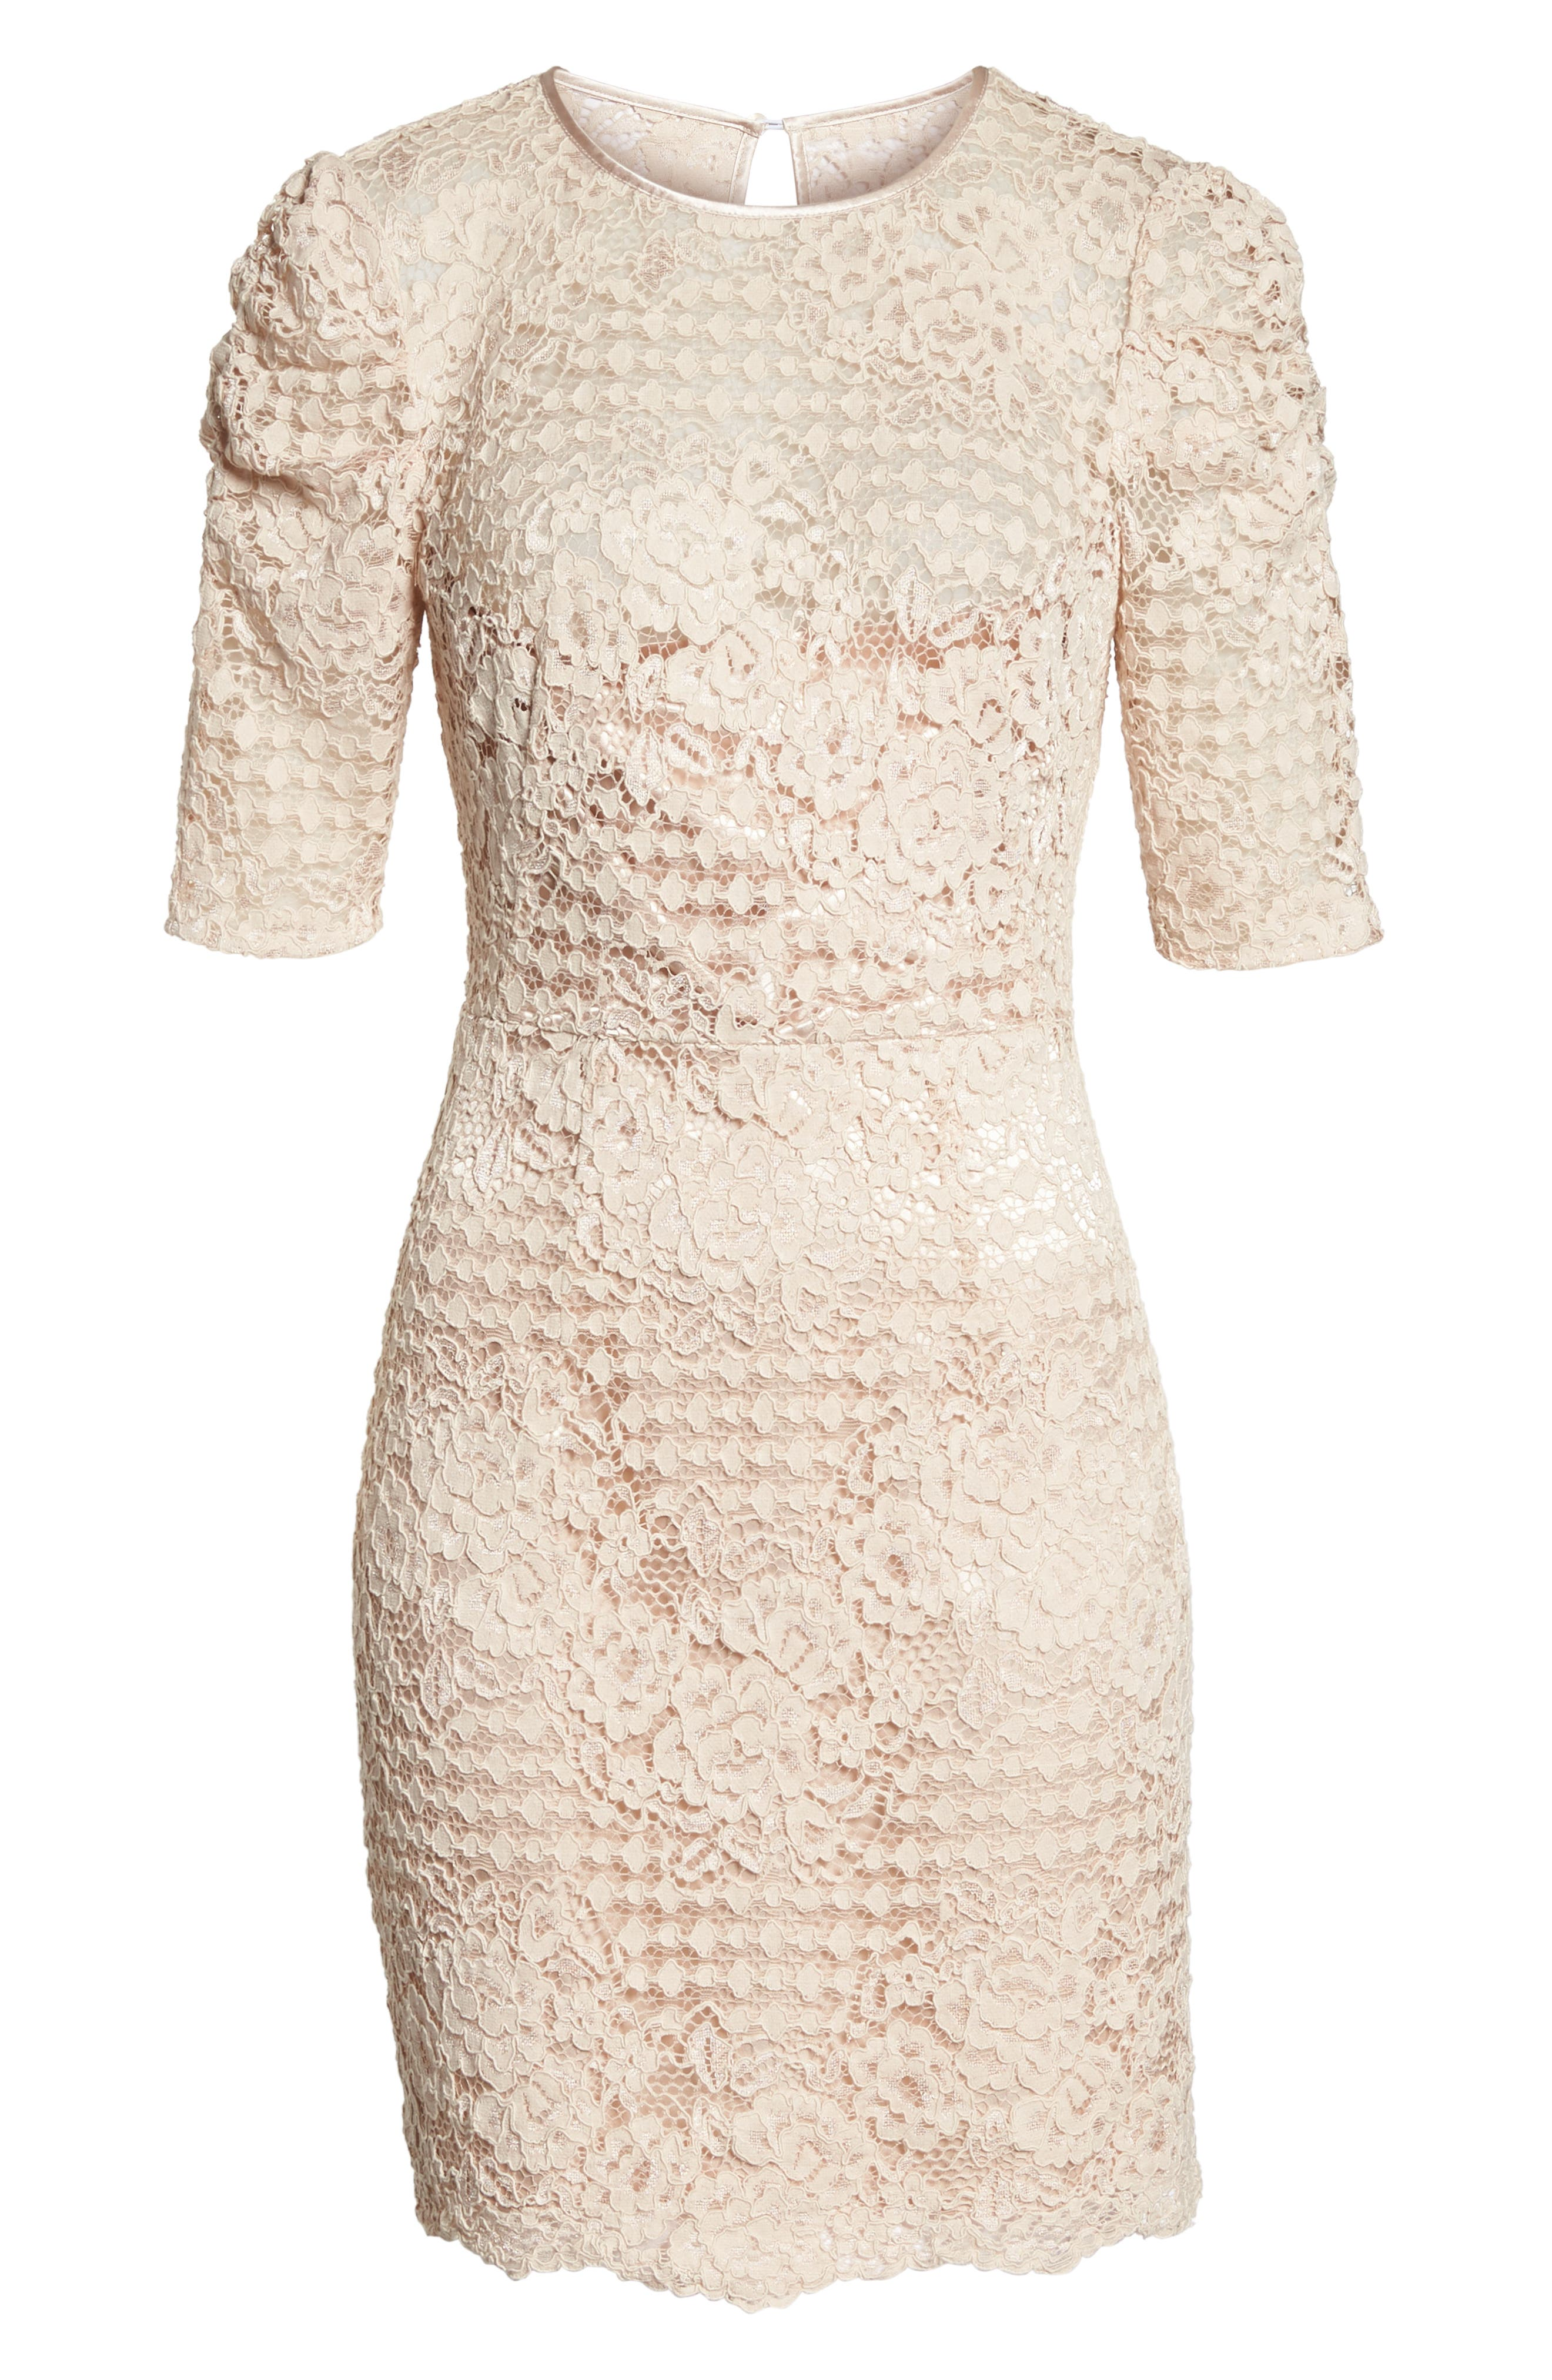 Ruched Sleeve Lace Dress,                             Alternate thumbnail 7, color,                             PINK BLUSH